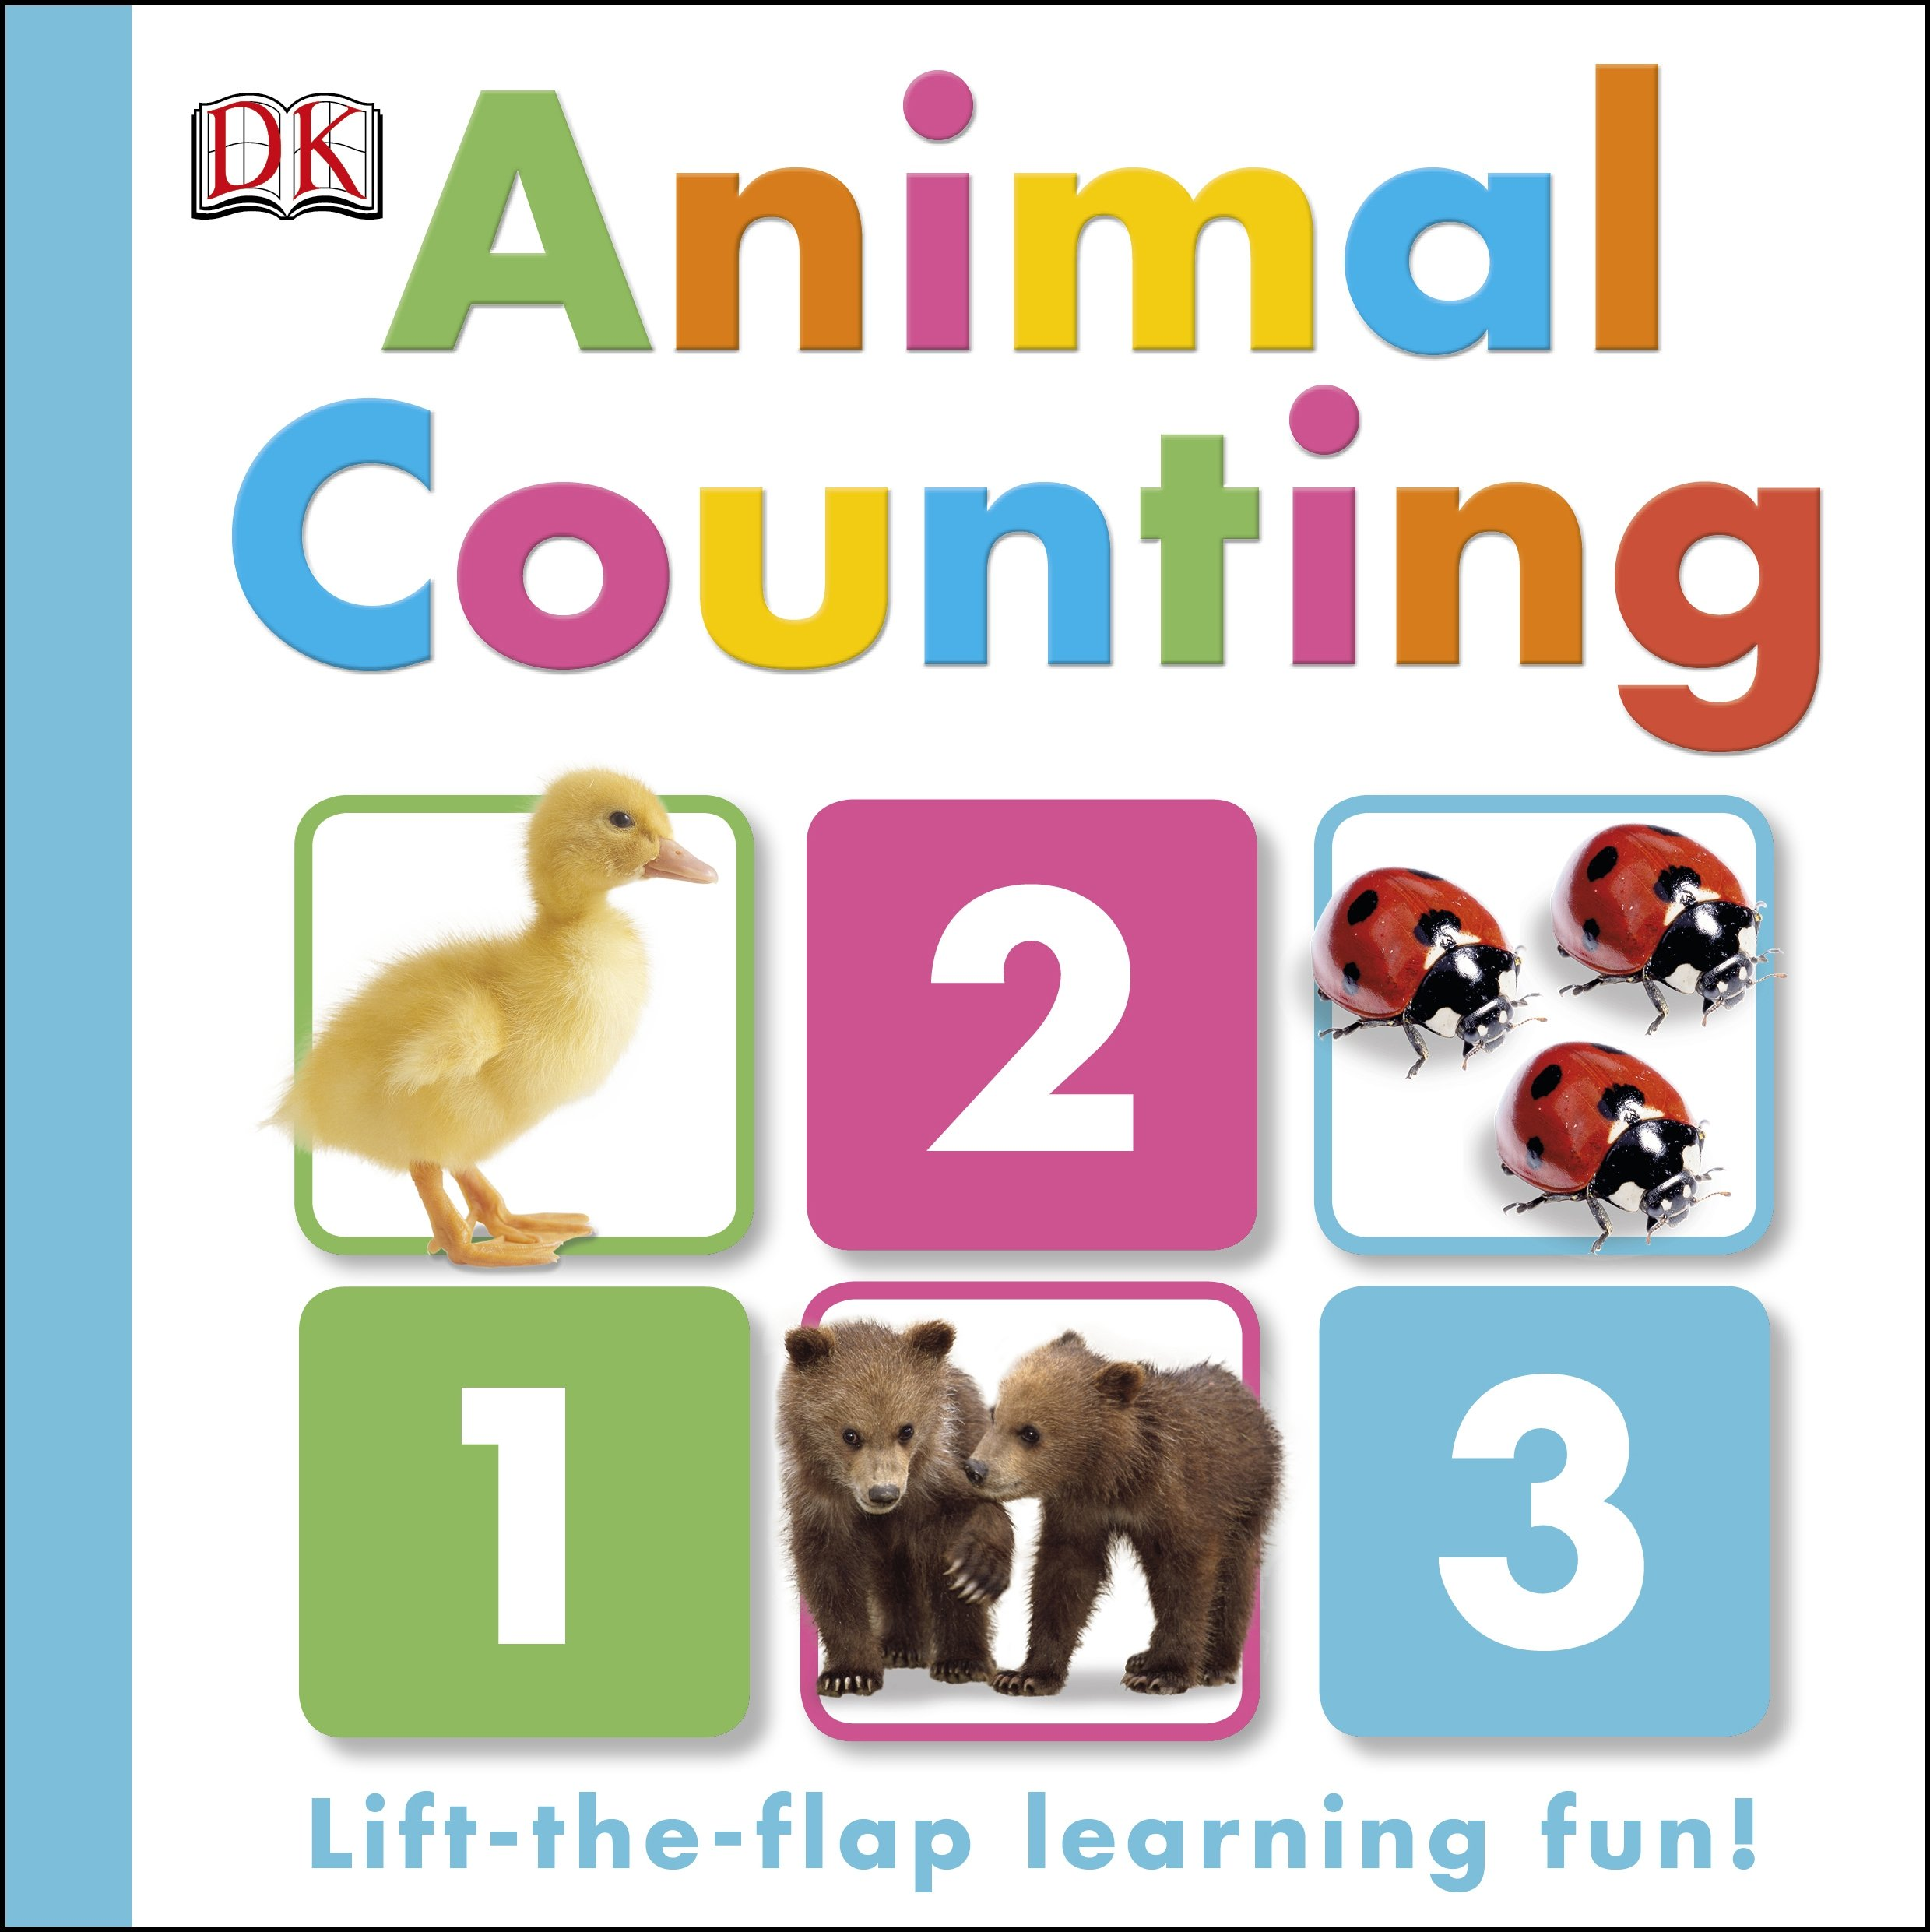 Animal Counting Lift-The-Flap - 9781409357186,62_201670,198000,tiki.vn,Animal-Counting-Lift-The-Flap-62_201670,Animal Counting Lift-The-Flap